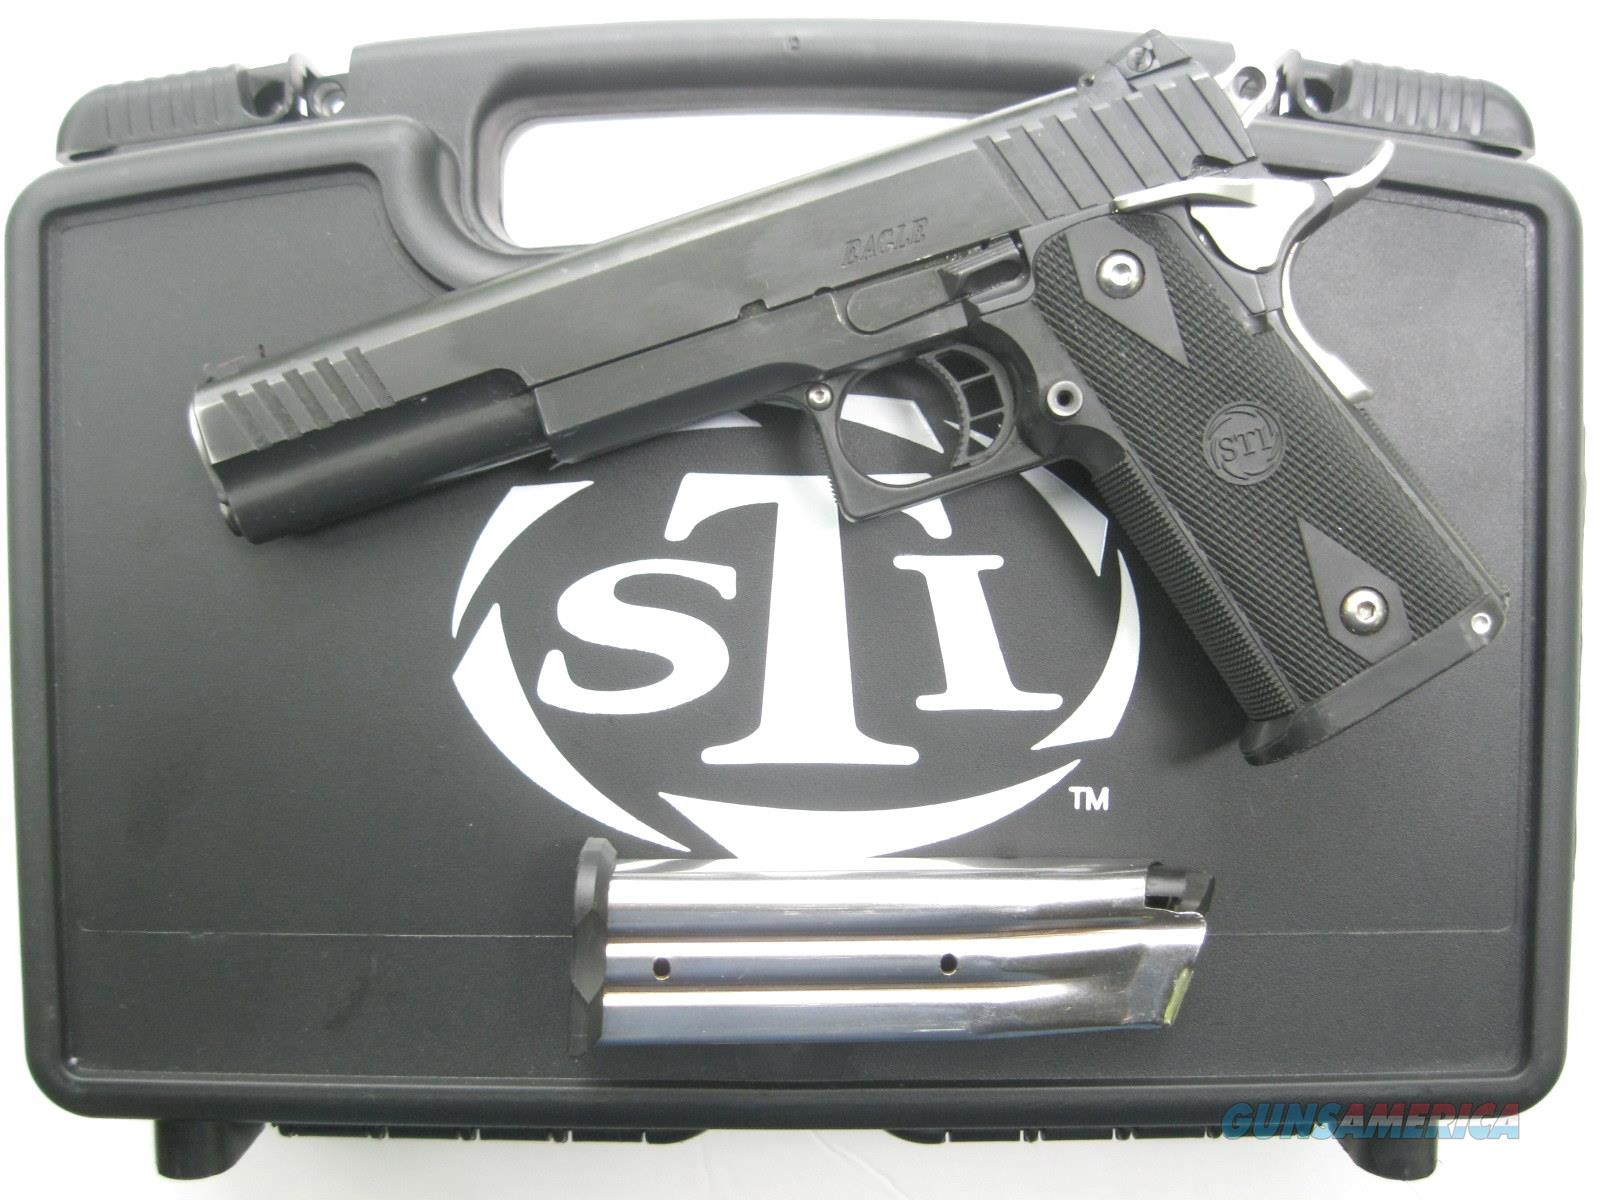 "STI Eagle 6.0 9mm Long Slide 2011 Hi-Cap 6"" Bushing Barrel DFO TAS   Guns > Pistols > STI Pistols"